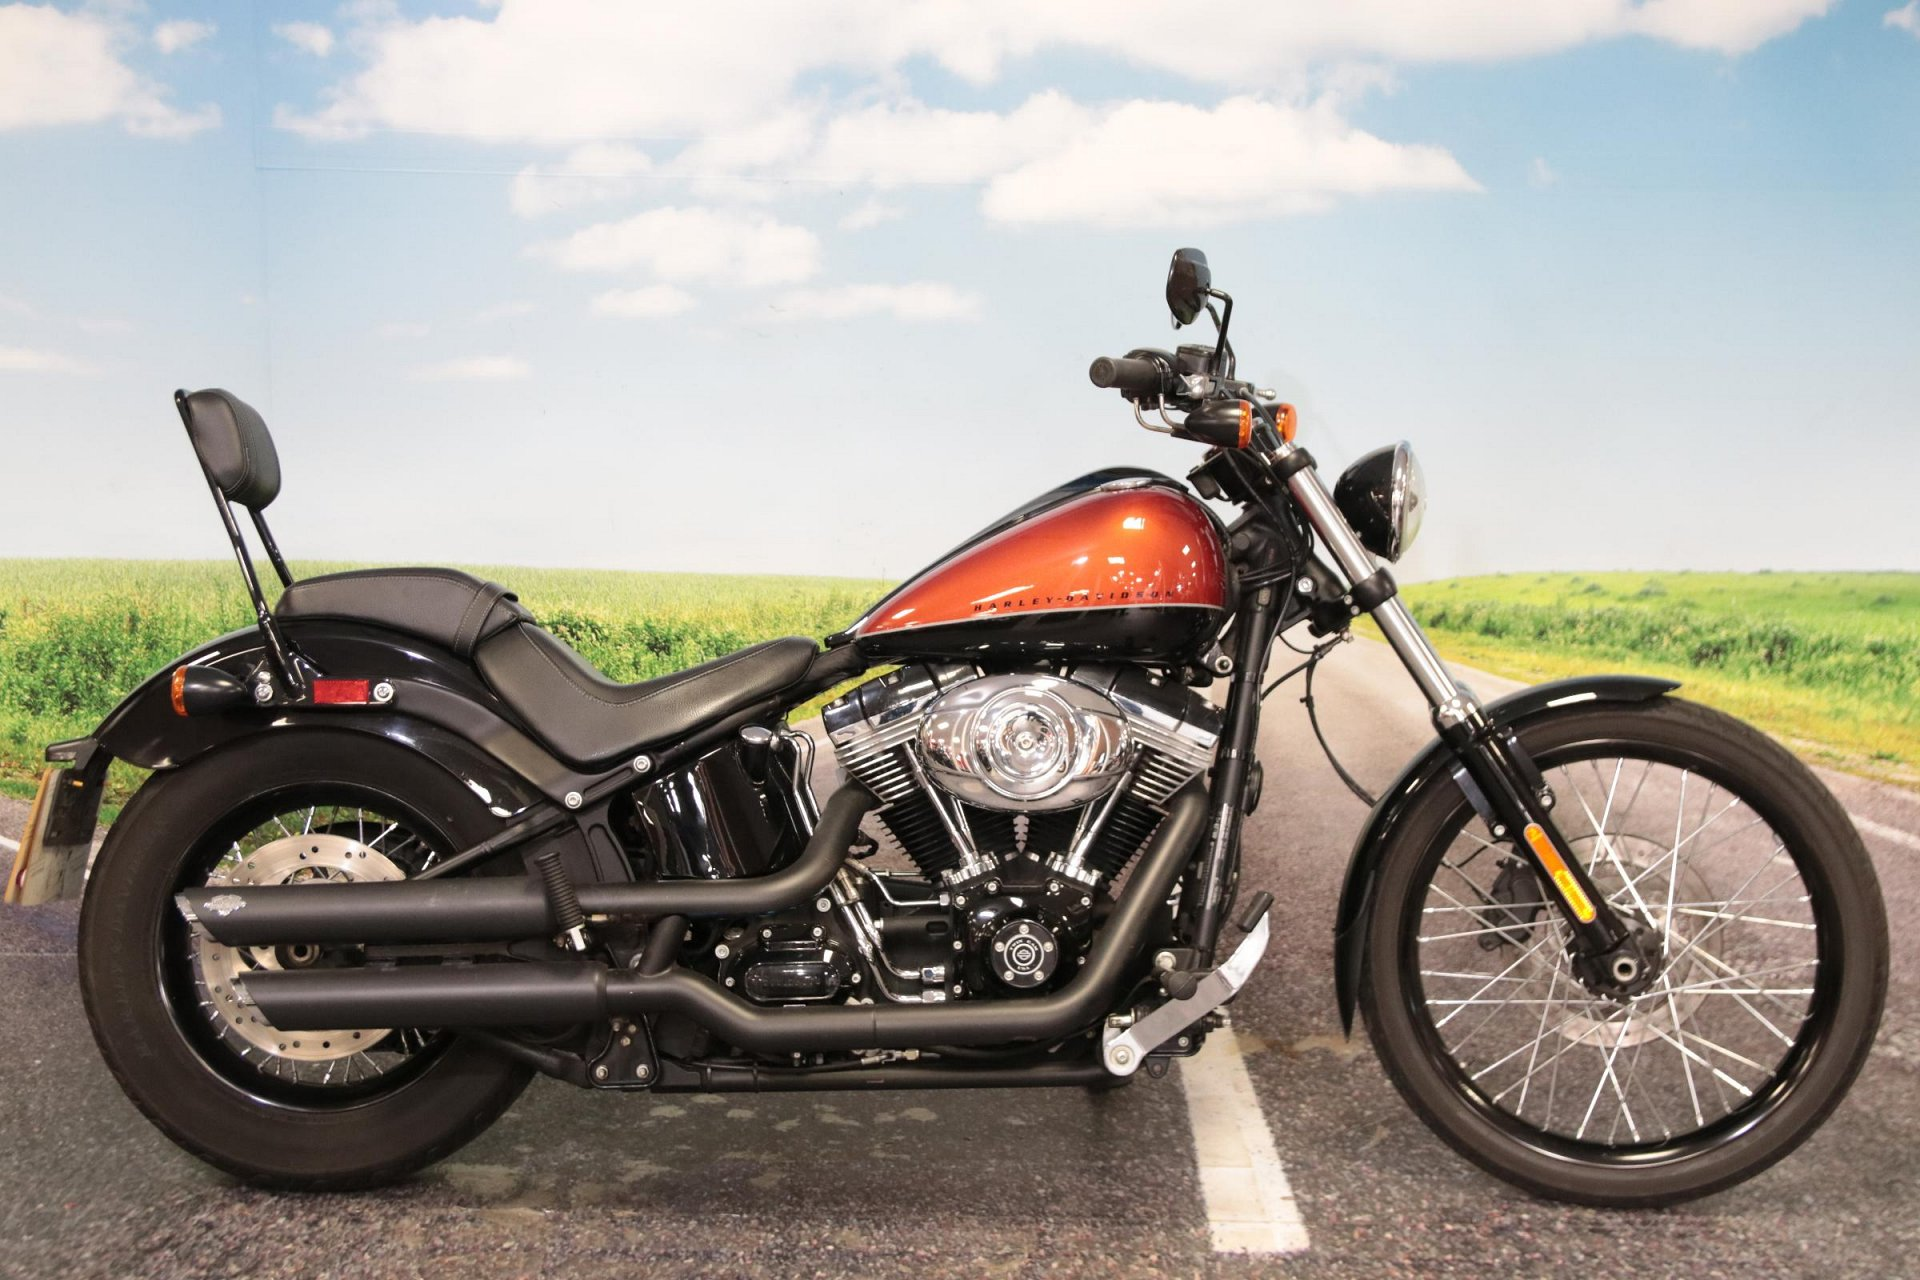 2013 Harley Davidson FXS BLACKLINE 1585 for sale in South Wales